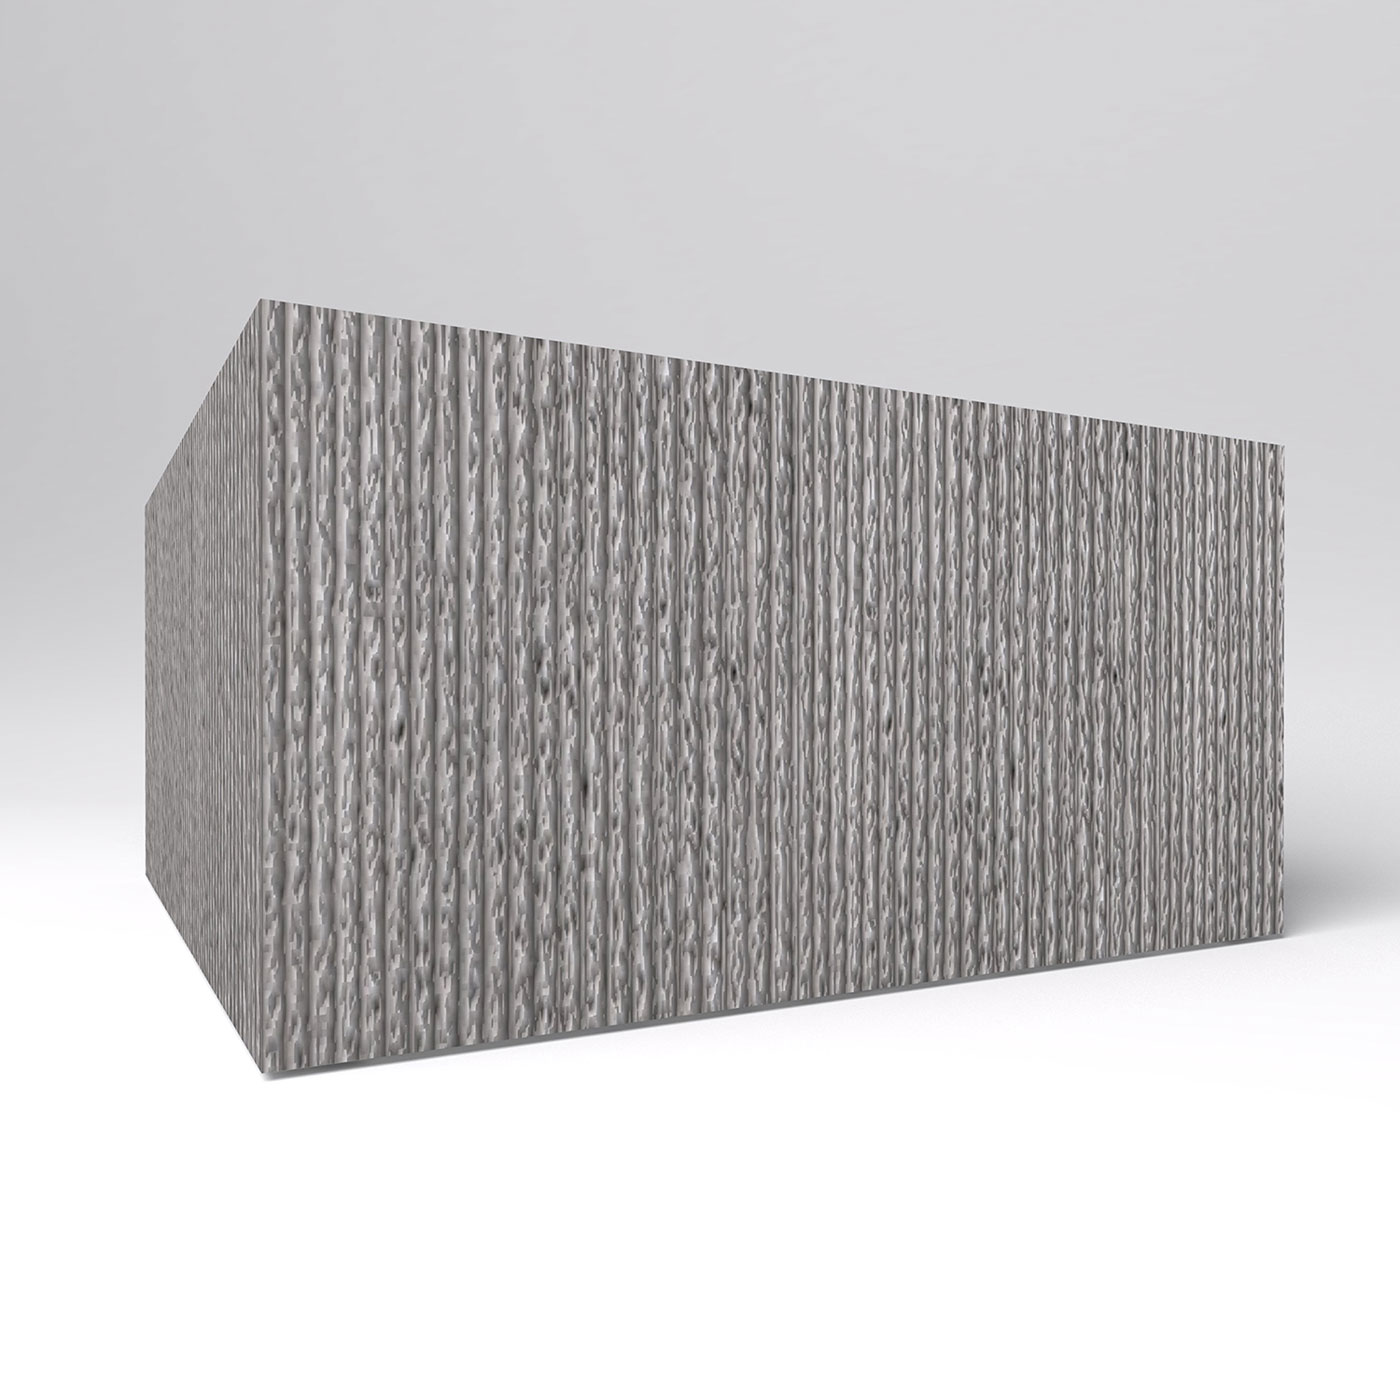 Commercial Corrugated Concrete Planters, Square | Planters Unlimited